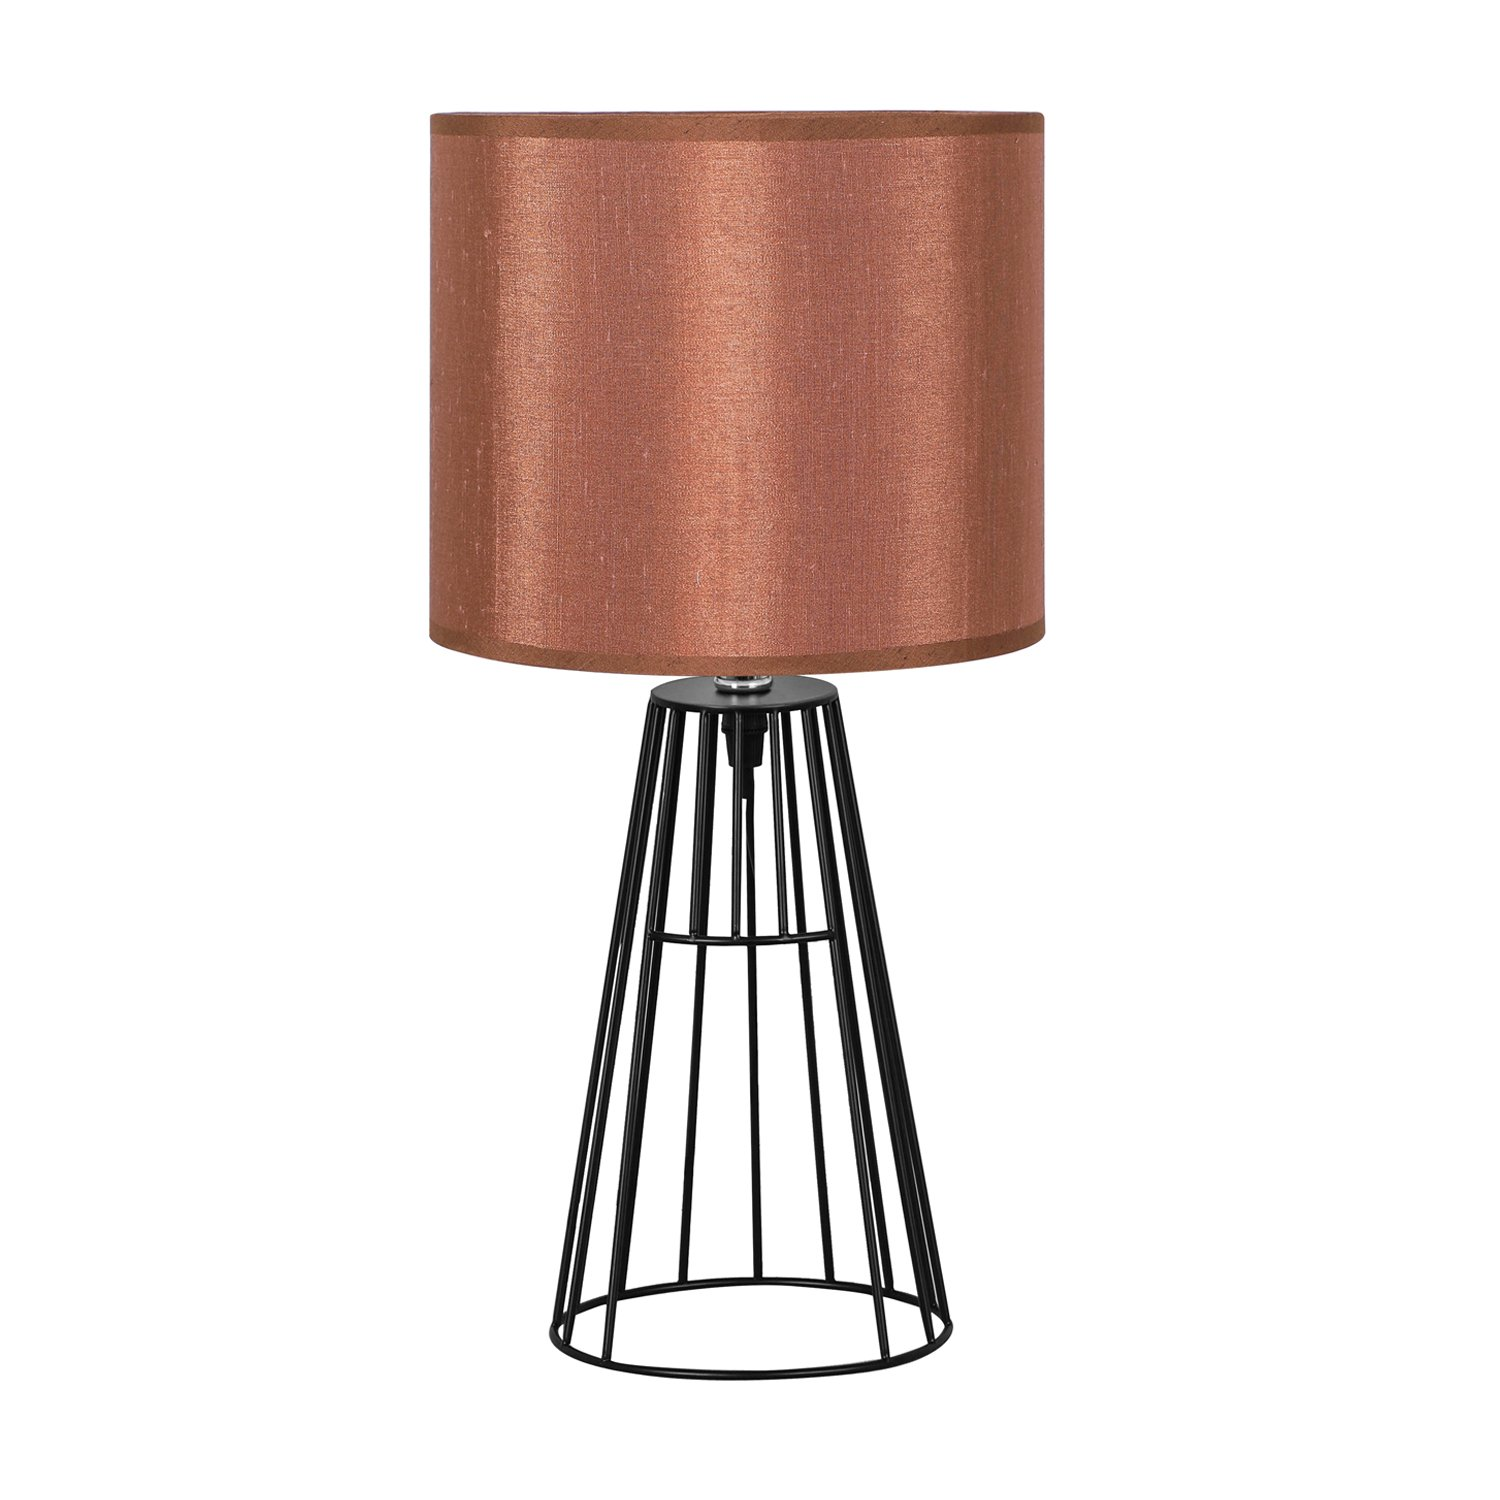 HOMPEN Elegant Table Lamp, Black Cage-Shaded Steel Wire Base with Dark Brown Fabric Shade, 18-Inch Height